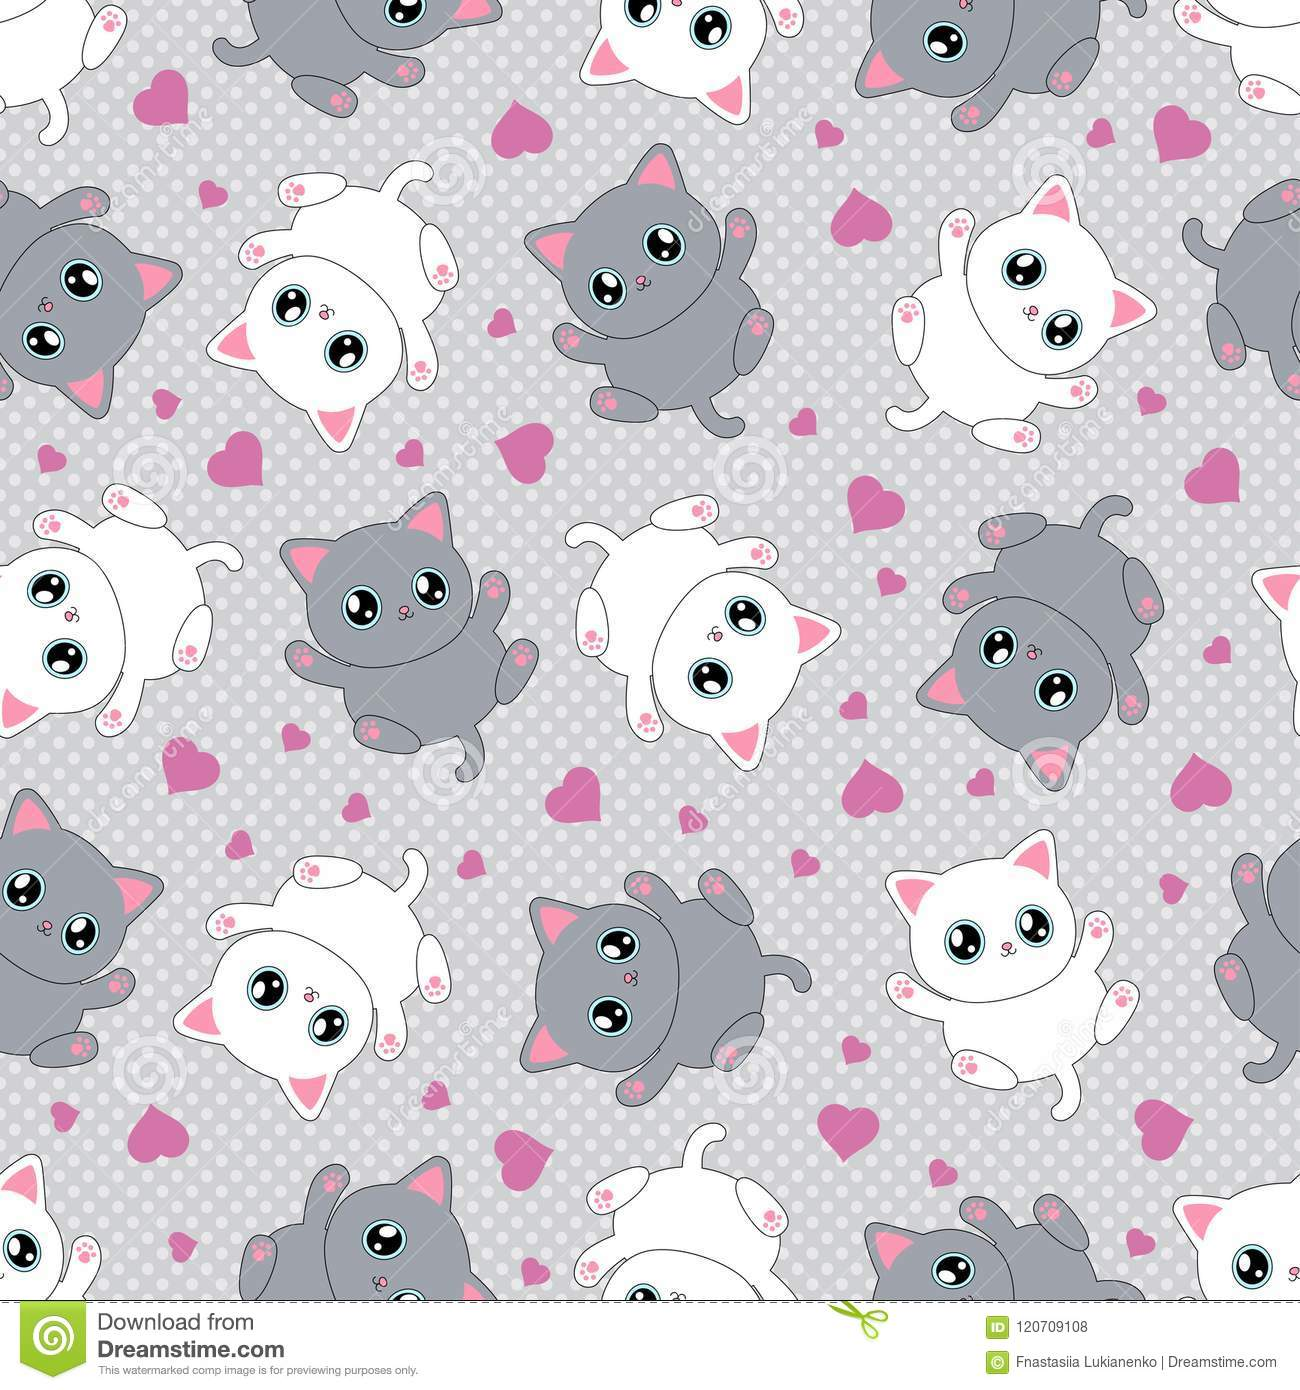 Seamless pattern with kittens on a gray background